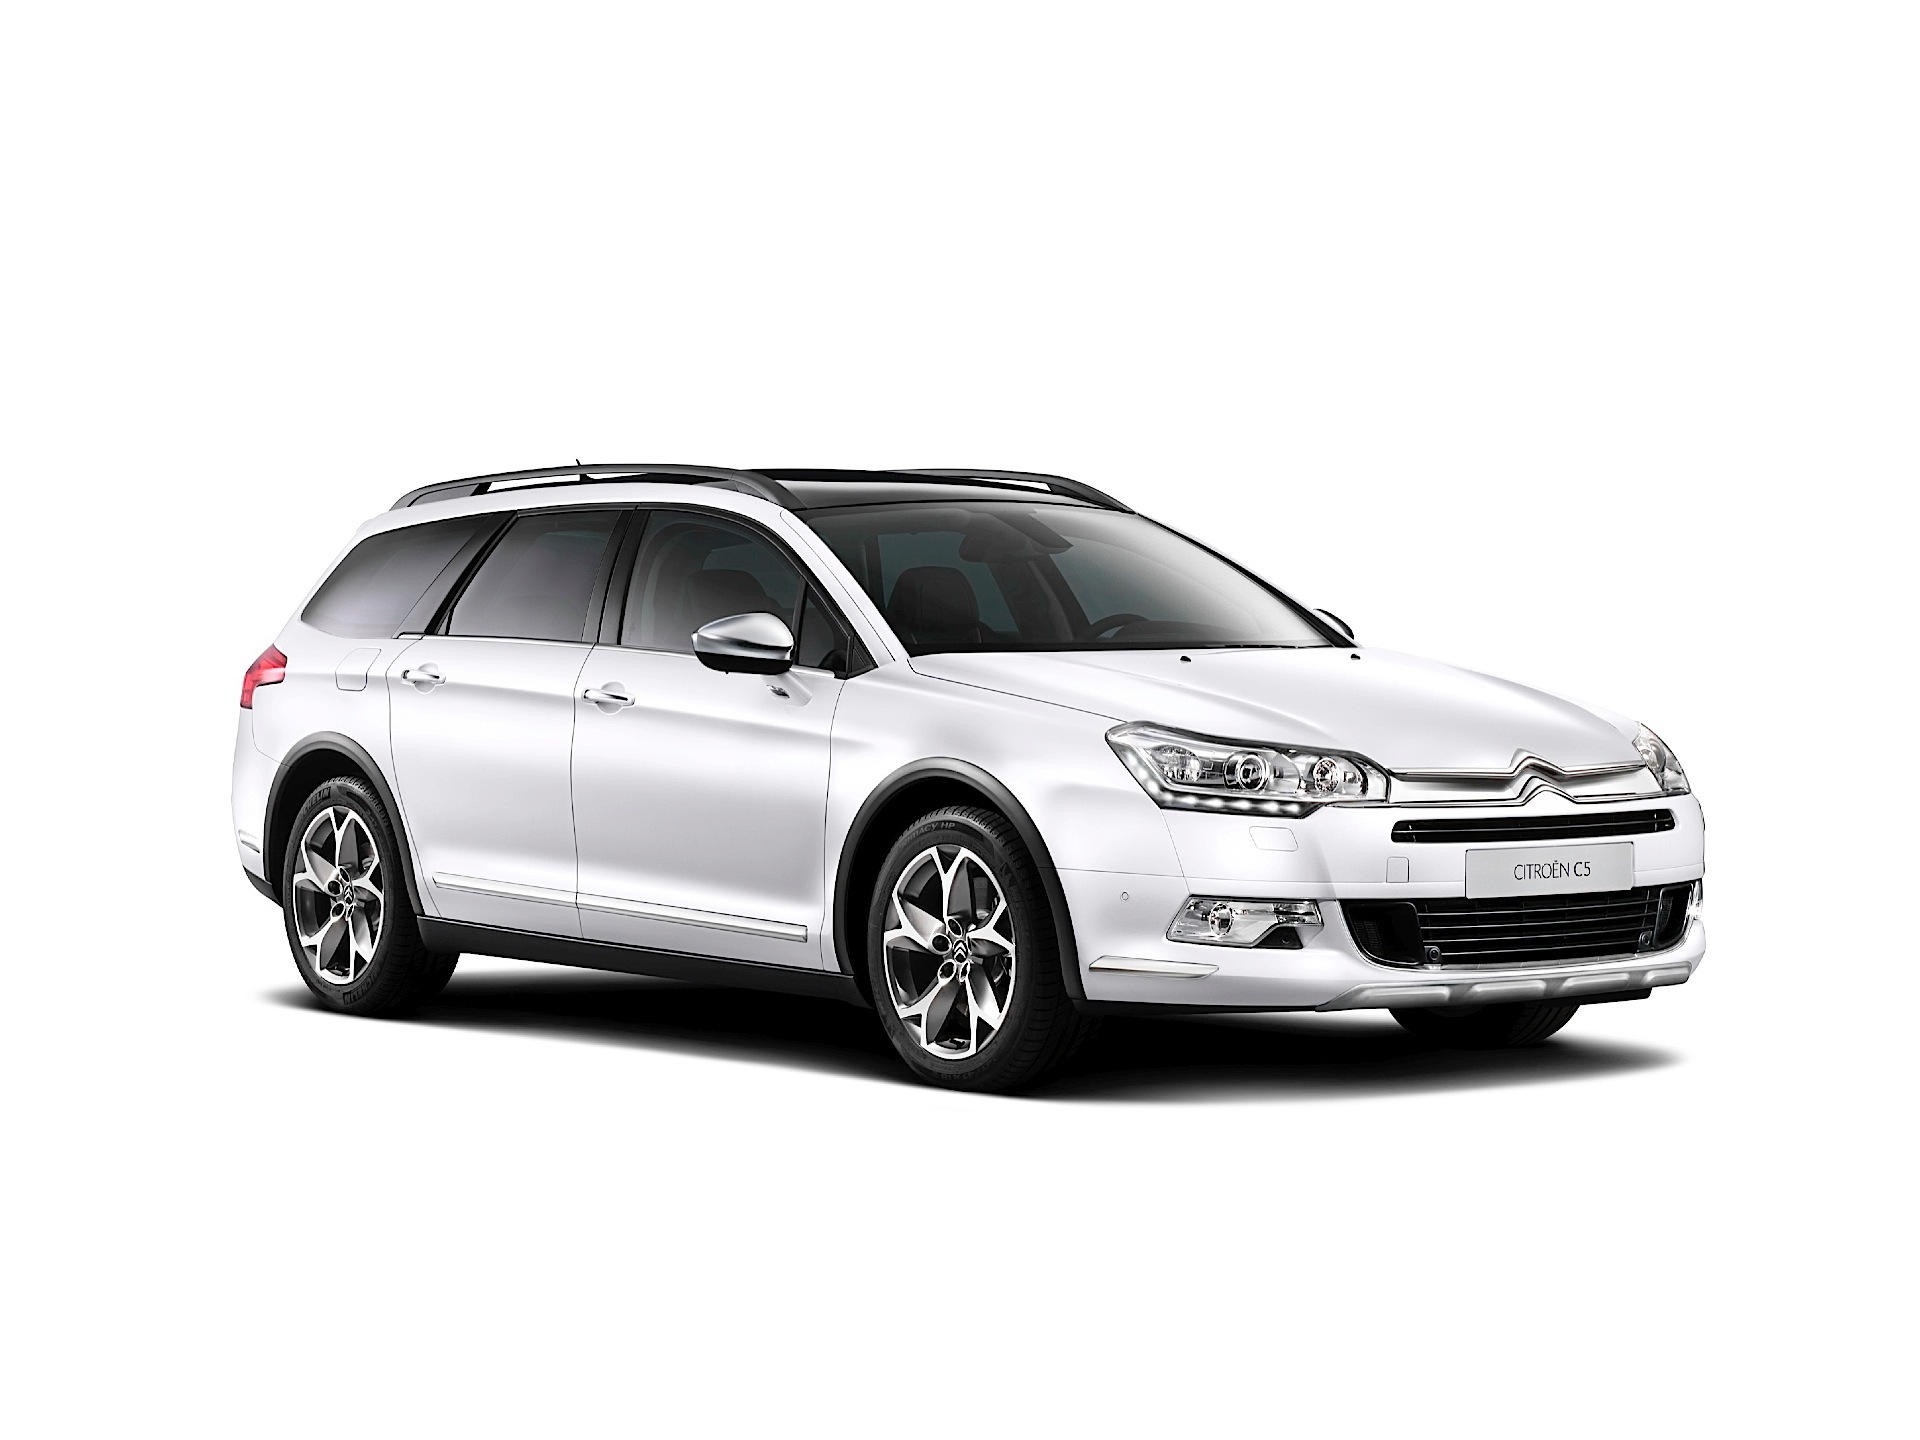 citroen c5 crosstourer specs 2014 2015 2016 2017. Black Bedroom Furniture Sets. Home Design Ideas